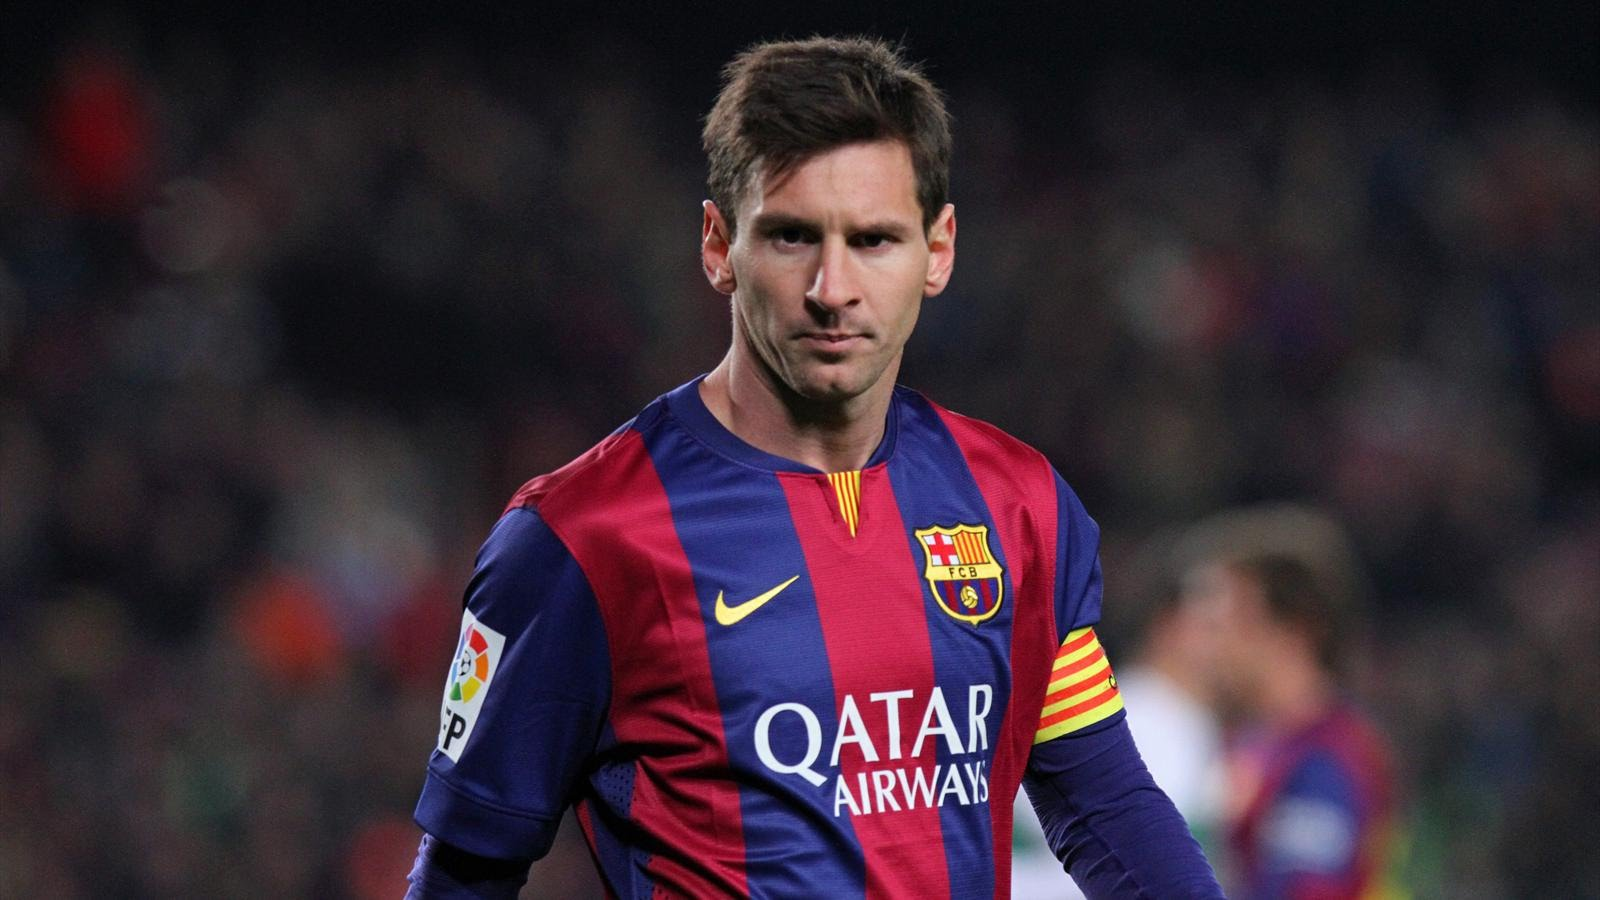 Top 100 Quotes on Lionel Messi Footie Central